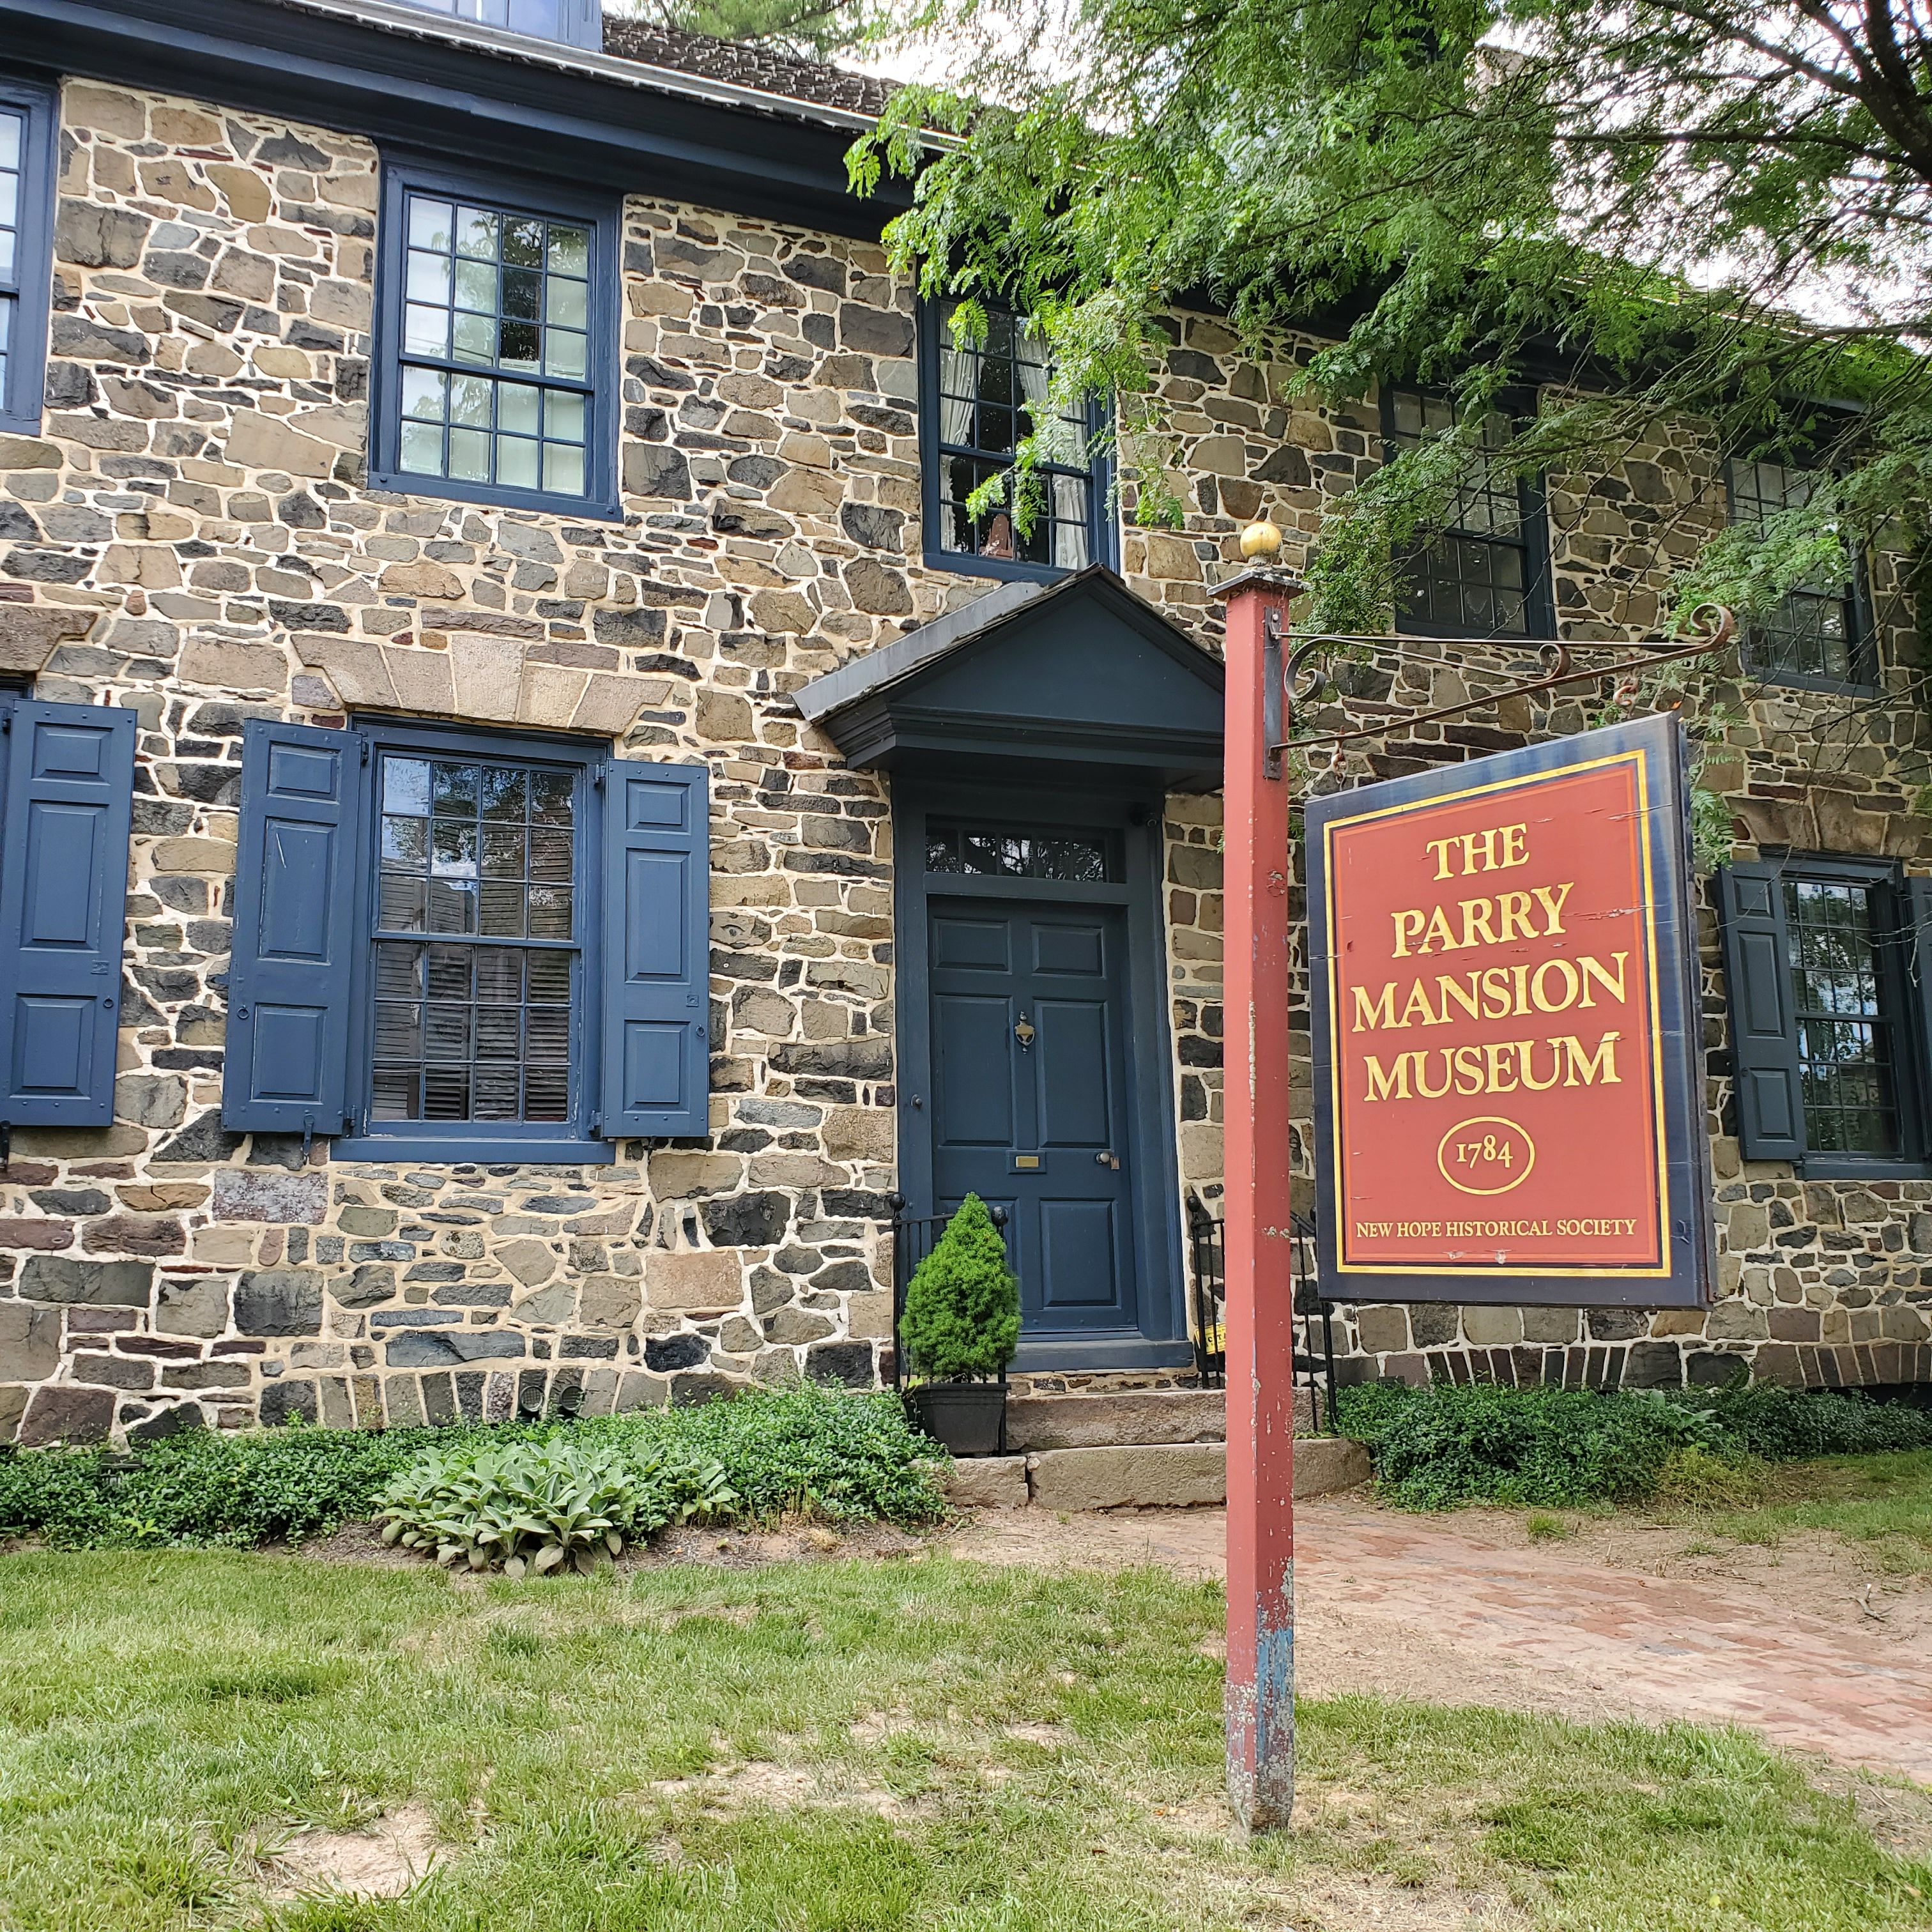 The Parry Mansion Museum